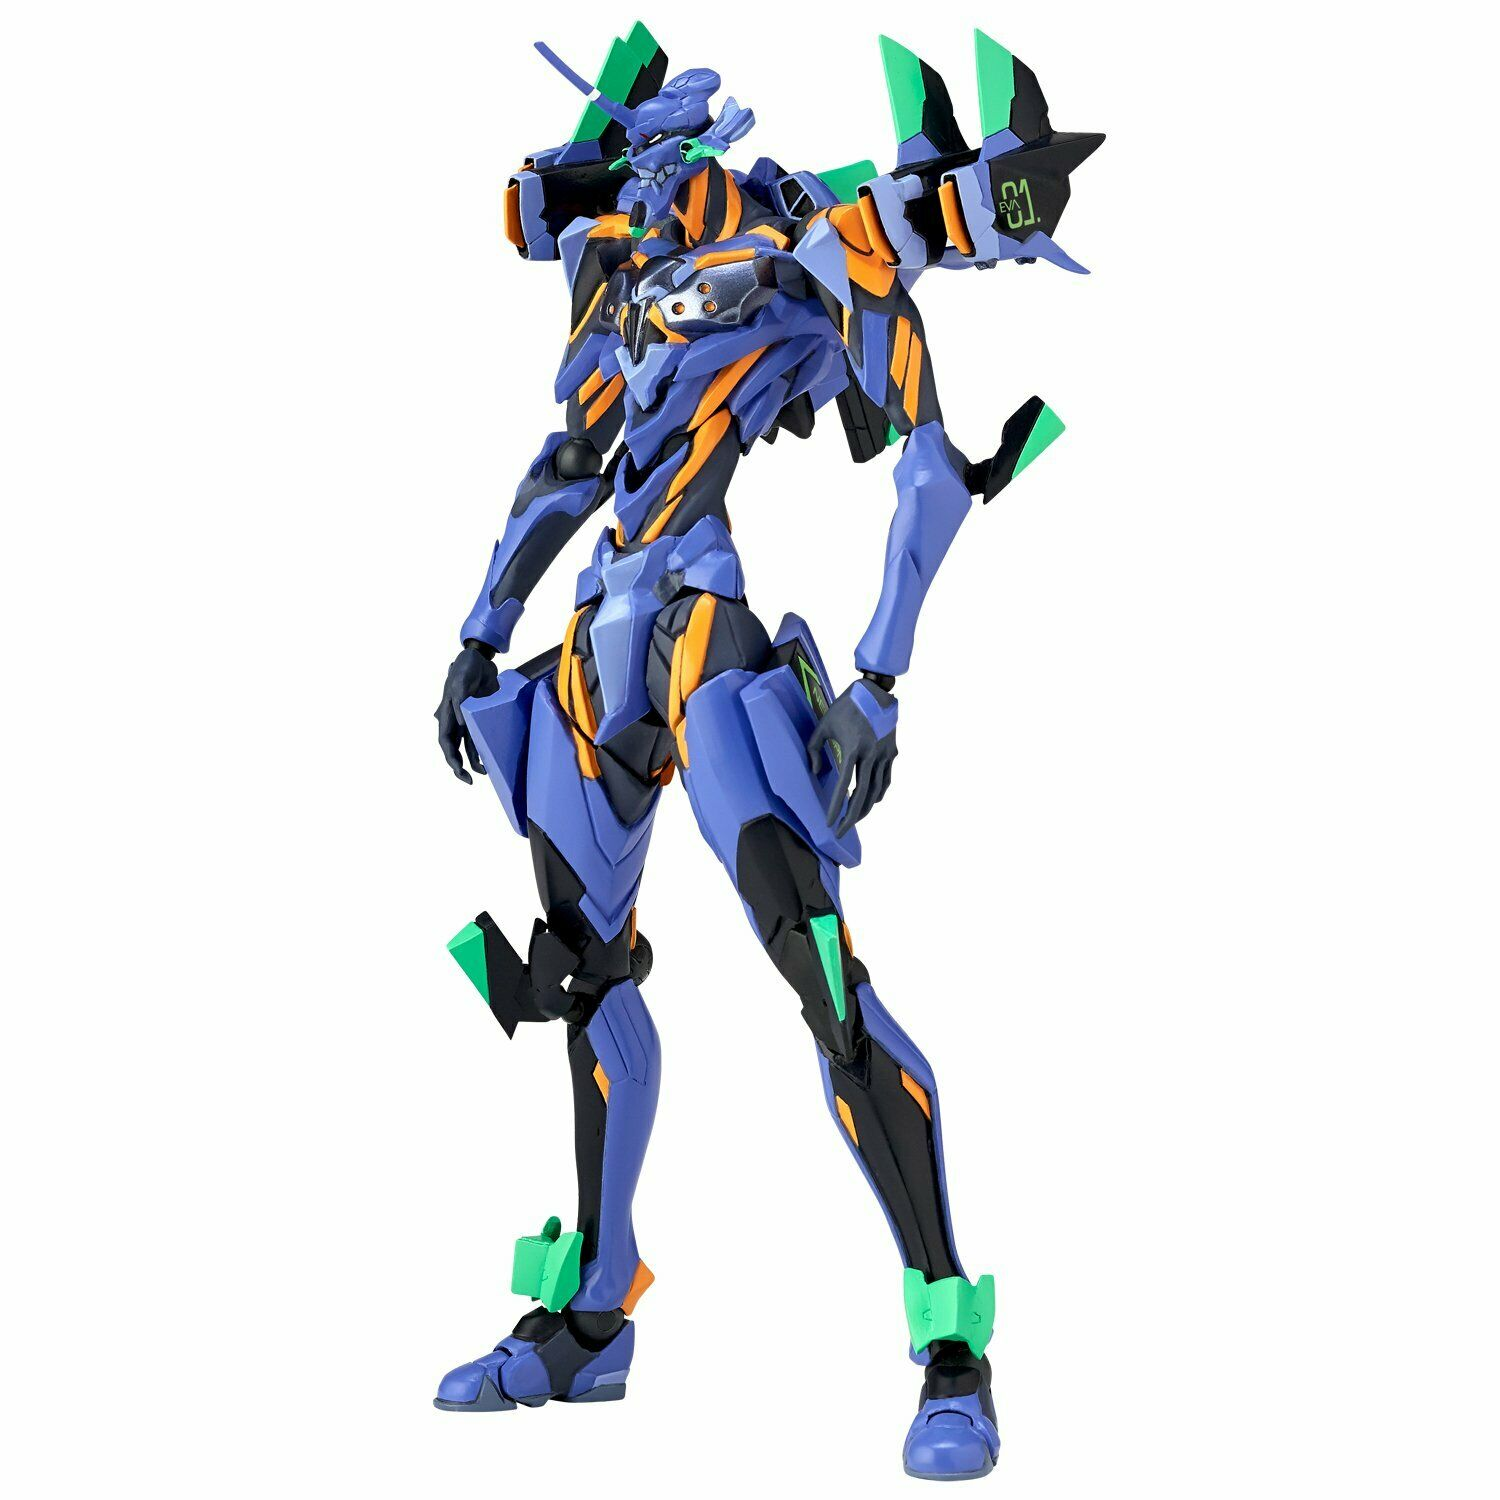 Kaiyodo Revoltech Evangelion Evolution EV-017 Anima Final Unit Figure avec suivi